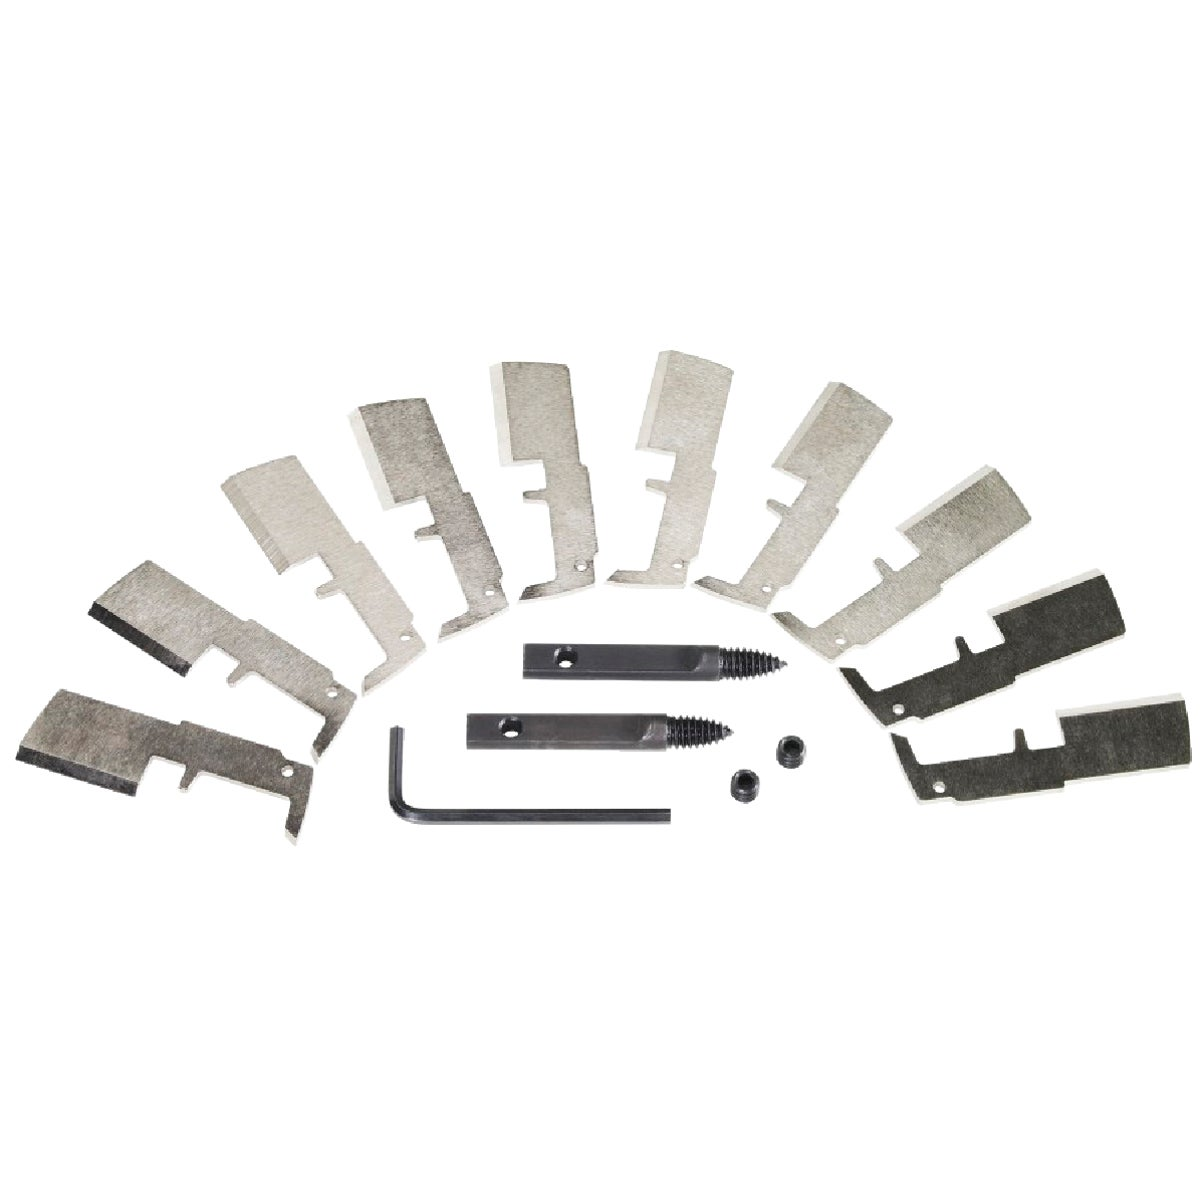 "10PK 2-9/16"" SWITCHBLADE - 48-25-5350 by Milwaukee Accessory"